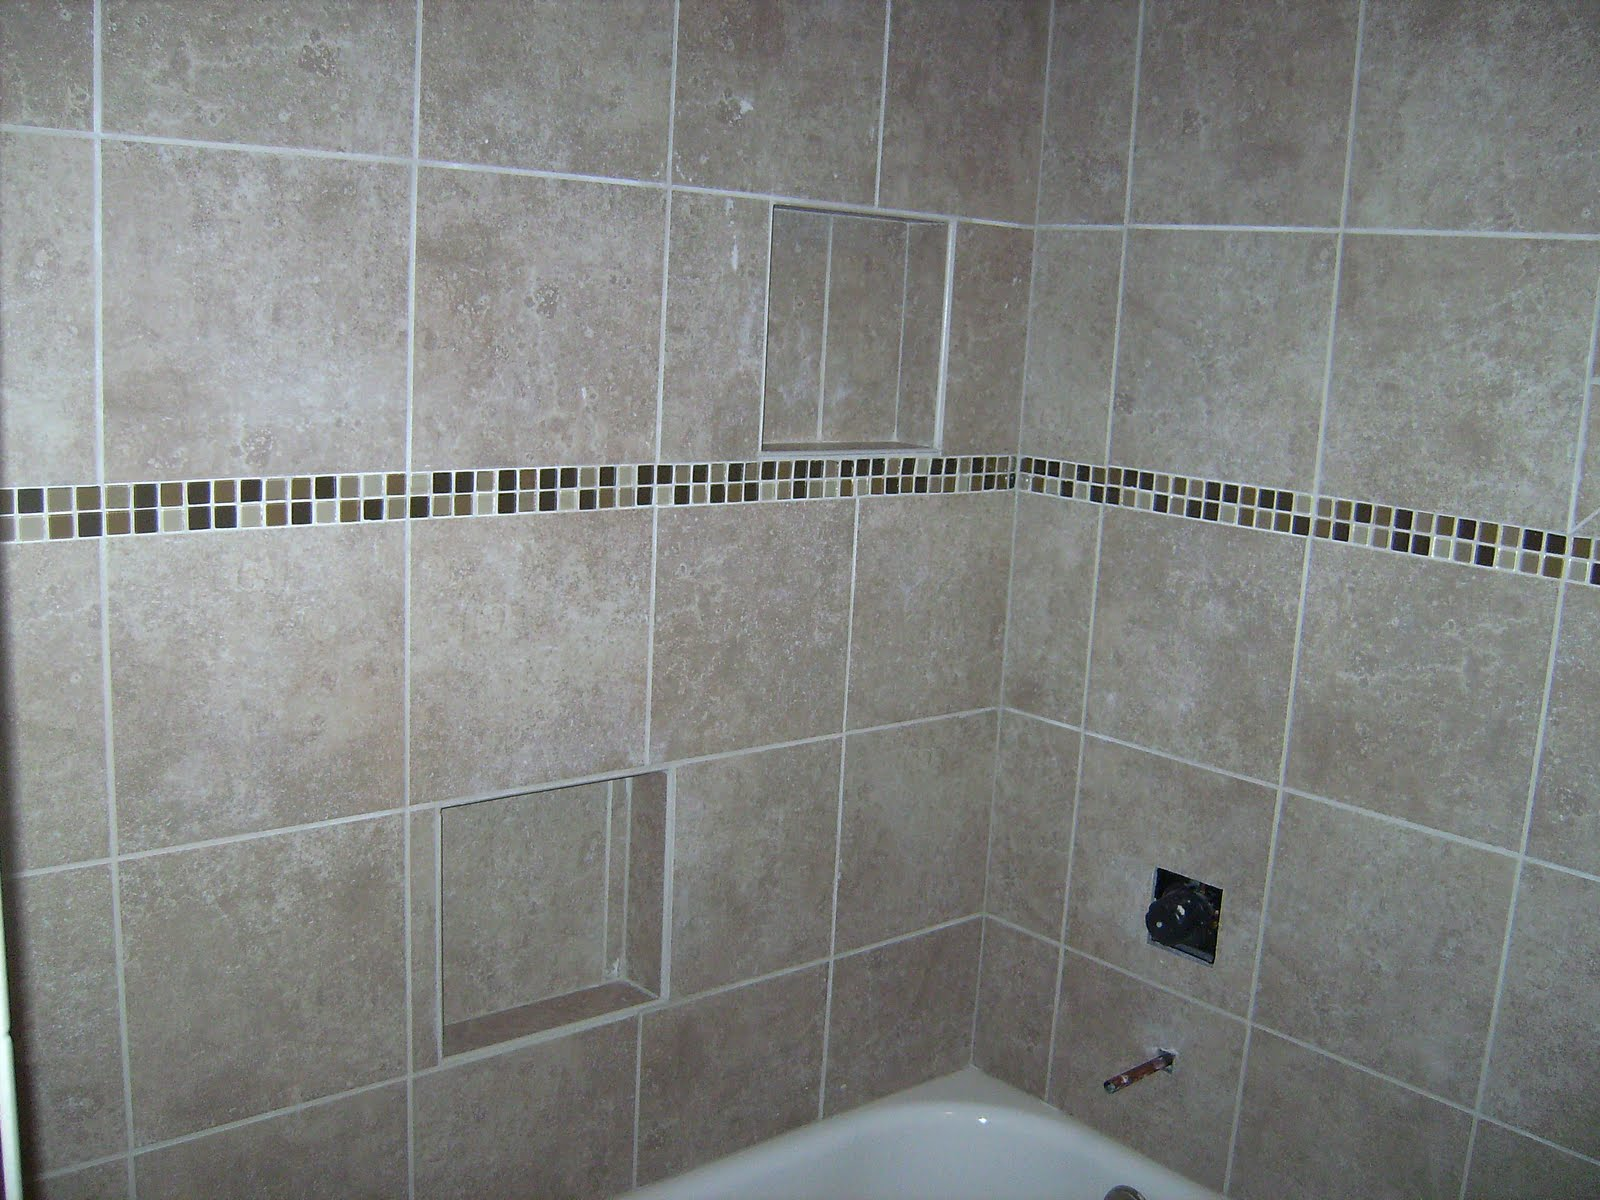 Vinyl tile in bathroom bathroom tile Bathroom wall tile